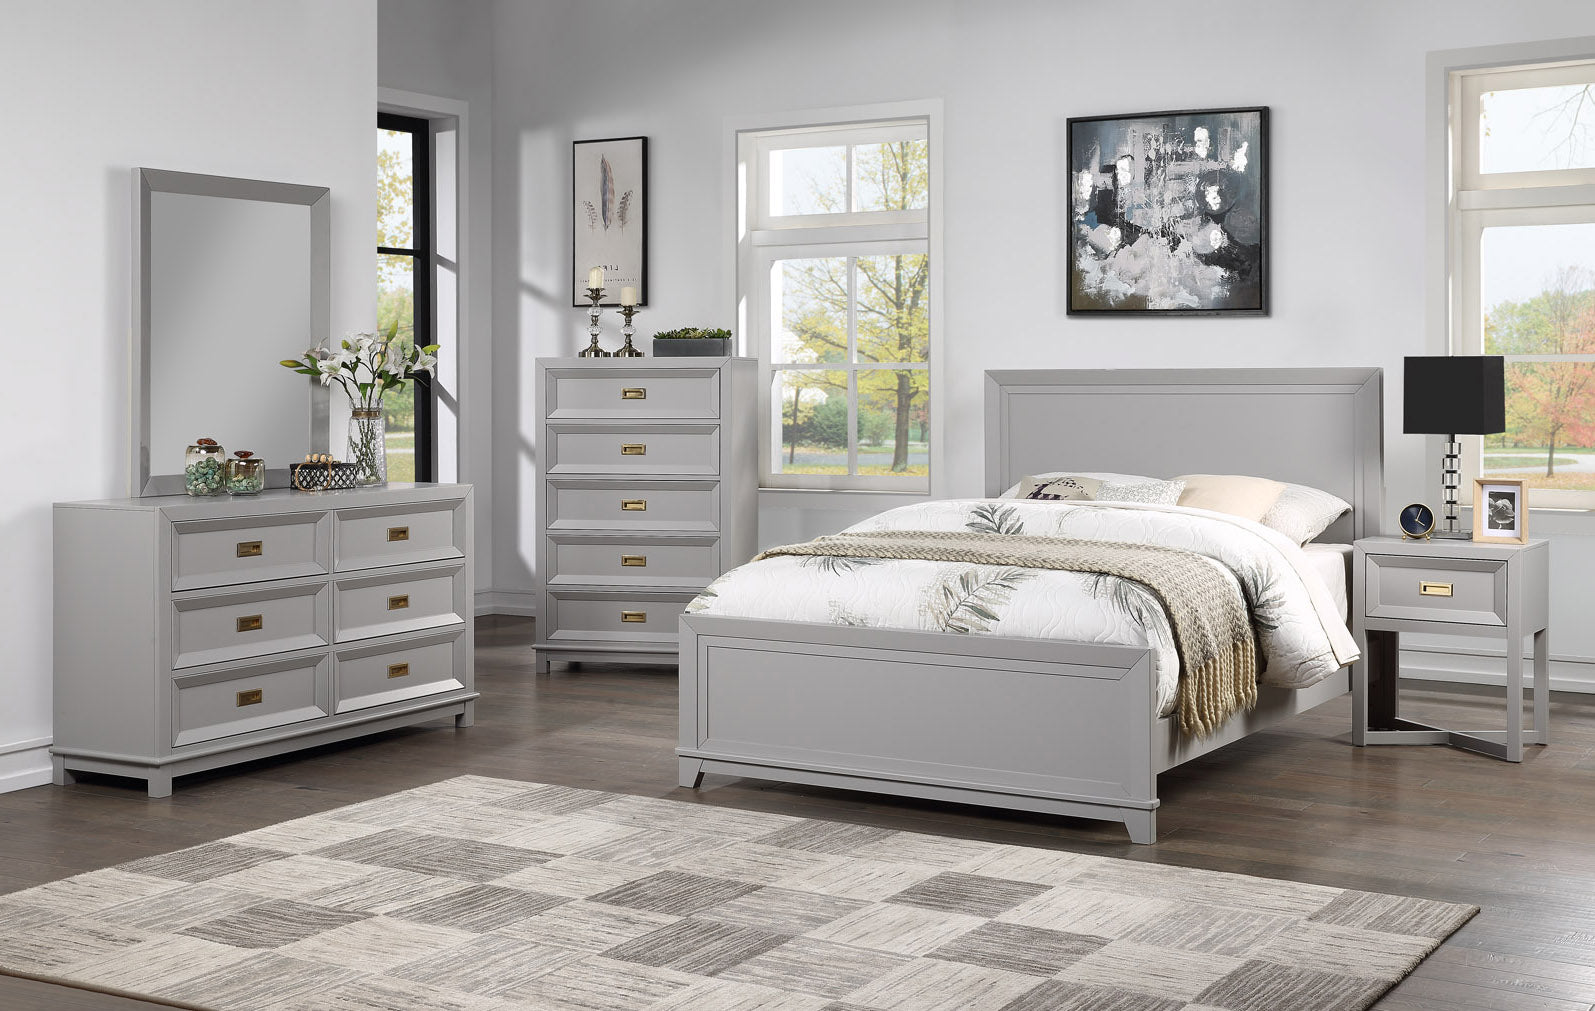 Victoria Bedroom Set Collection, Dove Gray Wood, Contemporary